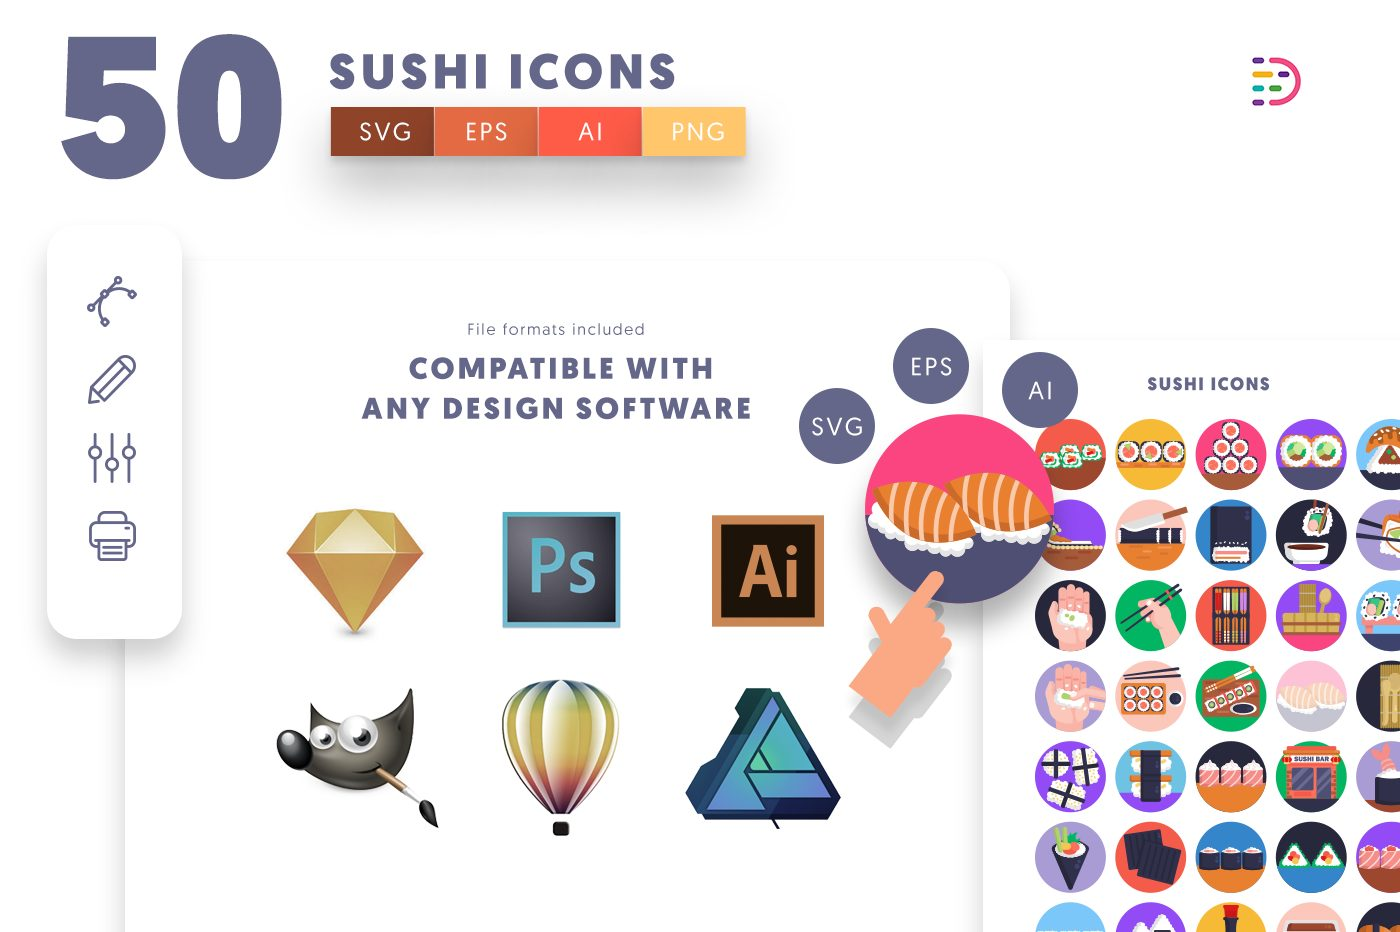 full vector 50 Sushi Icons EPS, SVG, PNG